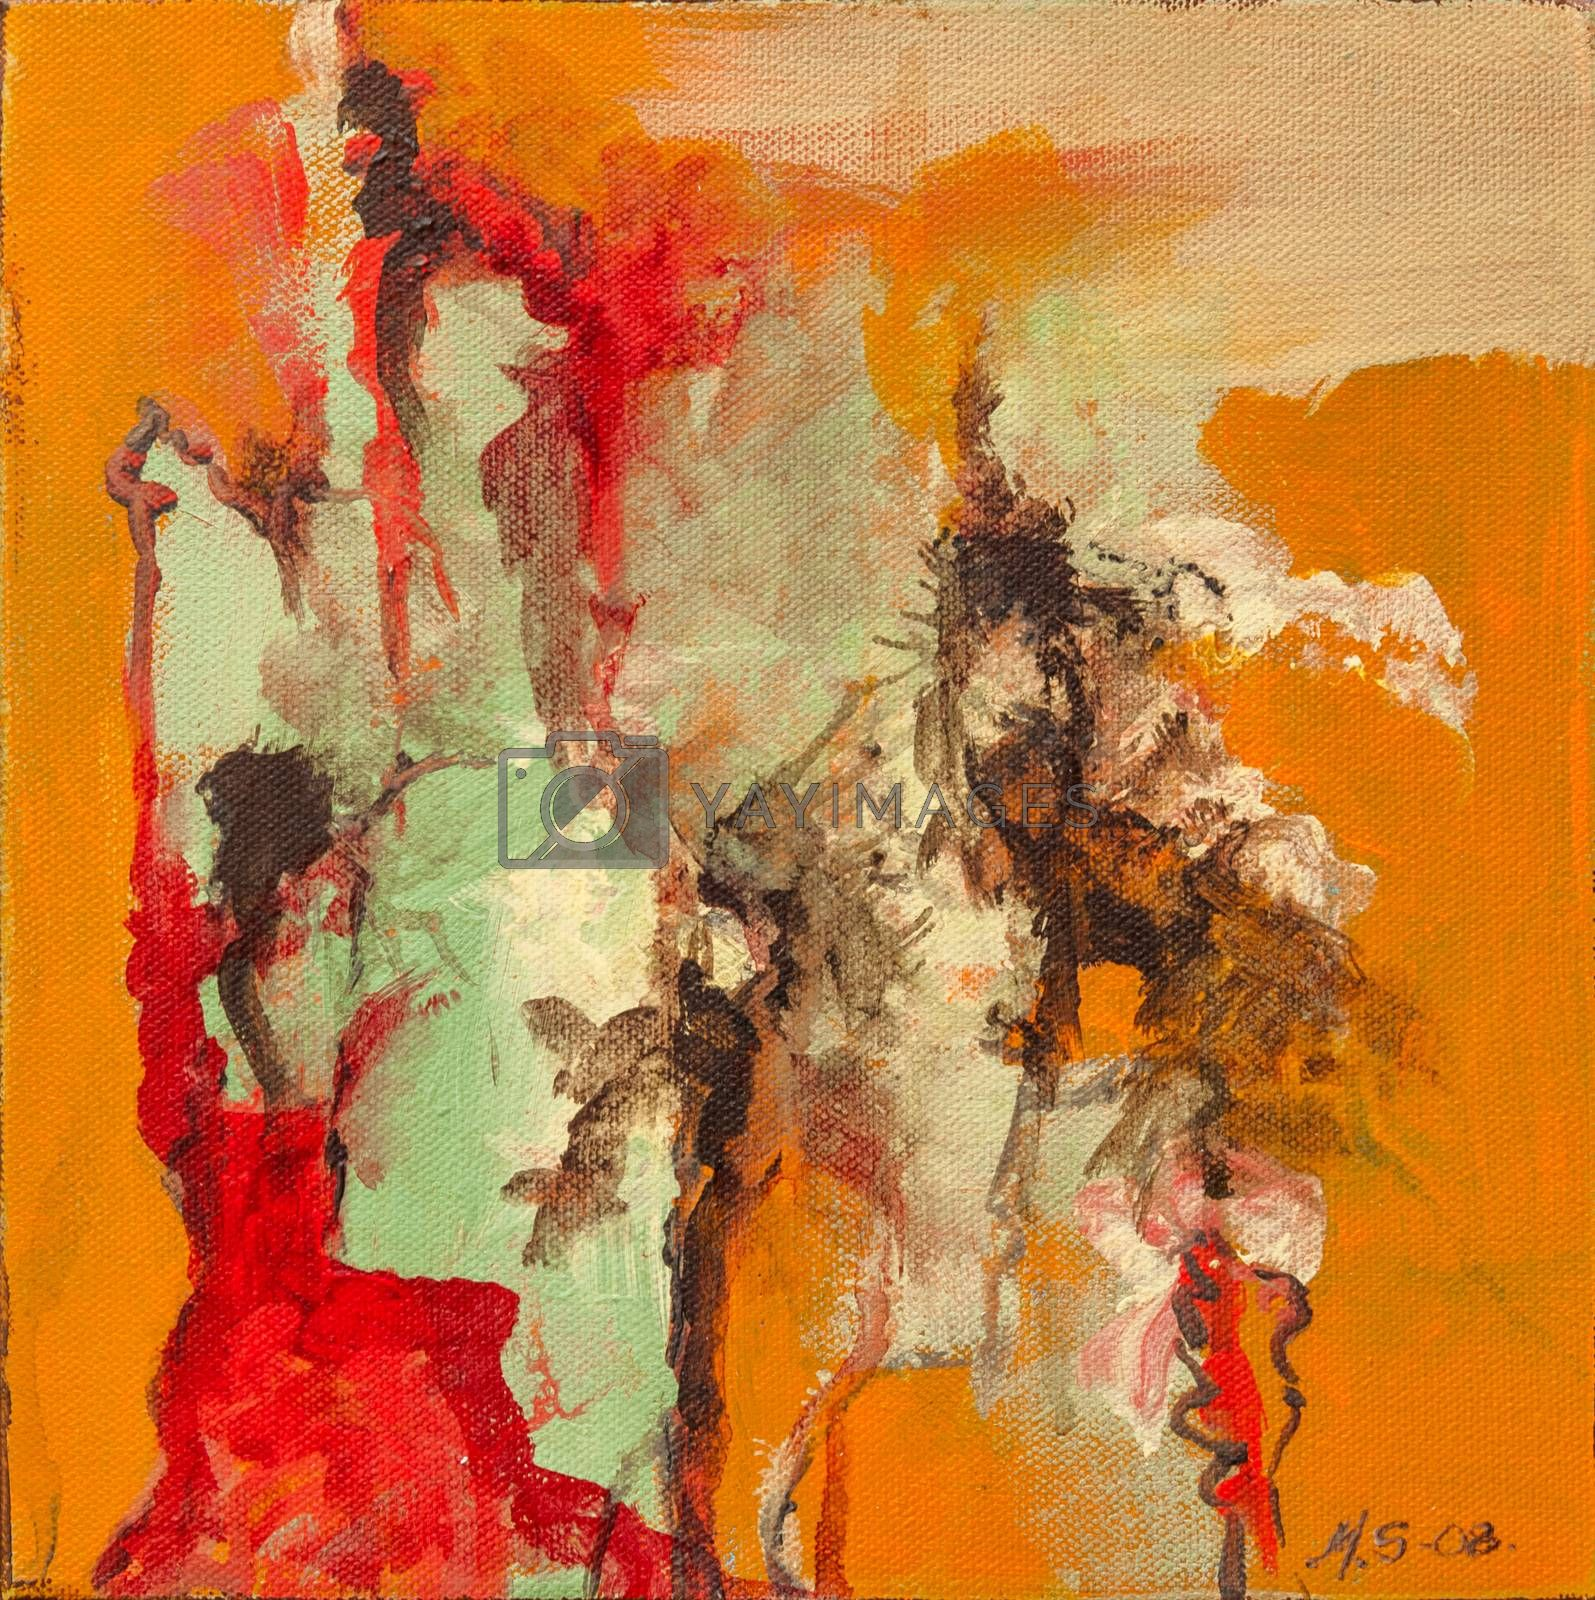 Oil painting on canvas, non-figurative, main color in orange with dark green, red and turquoise